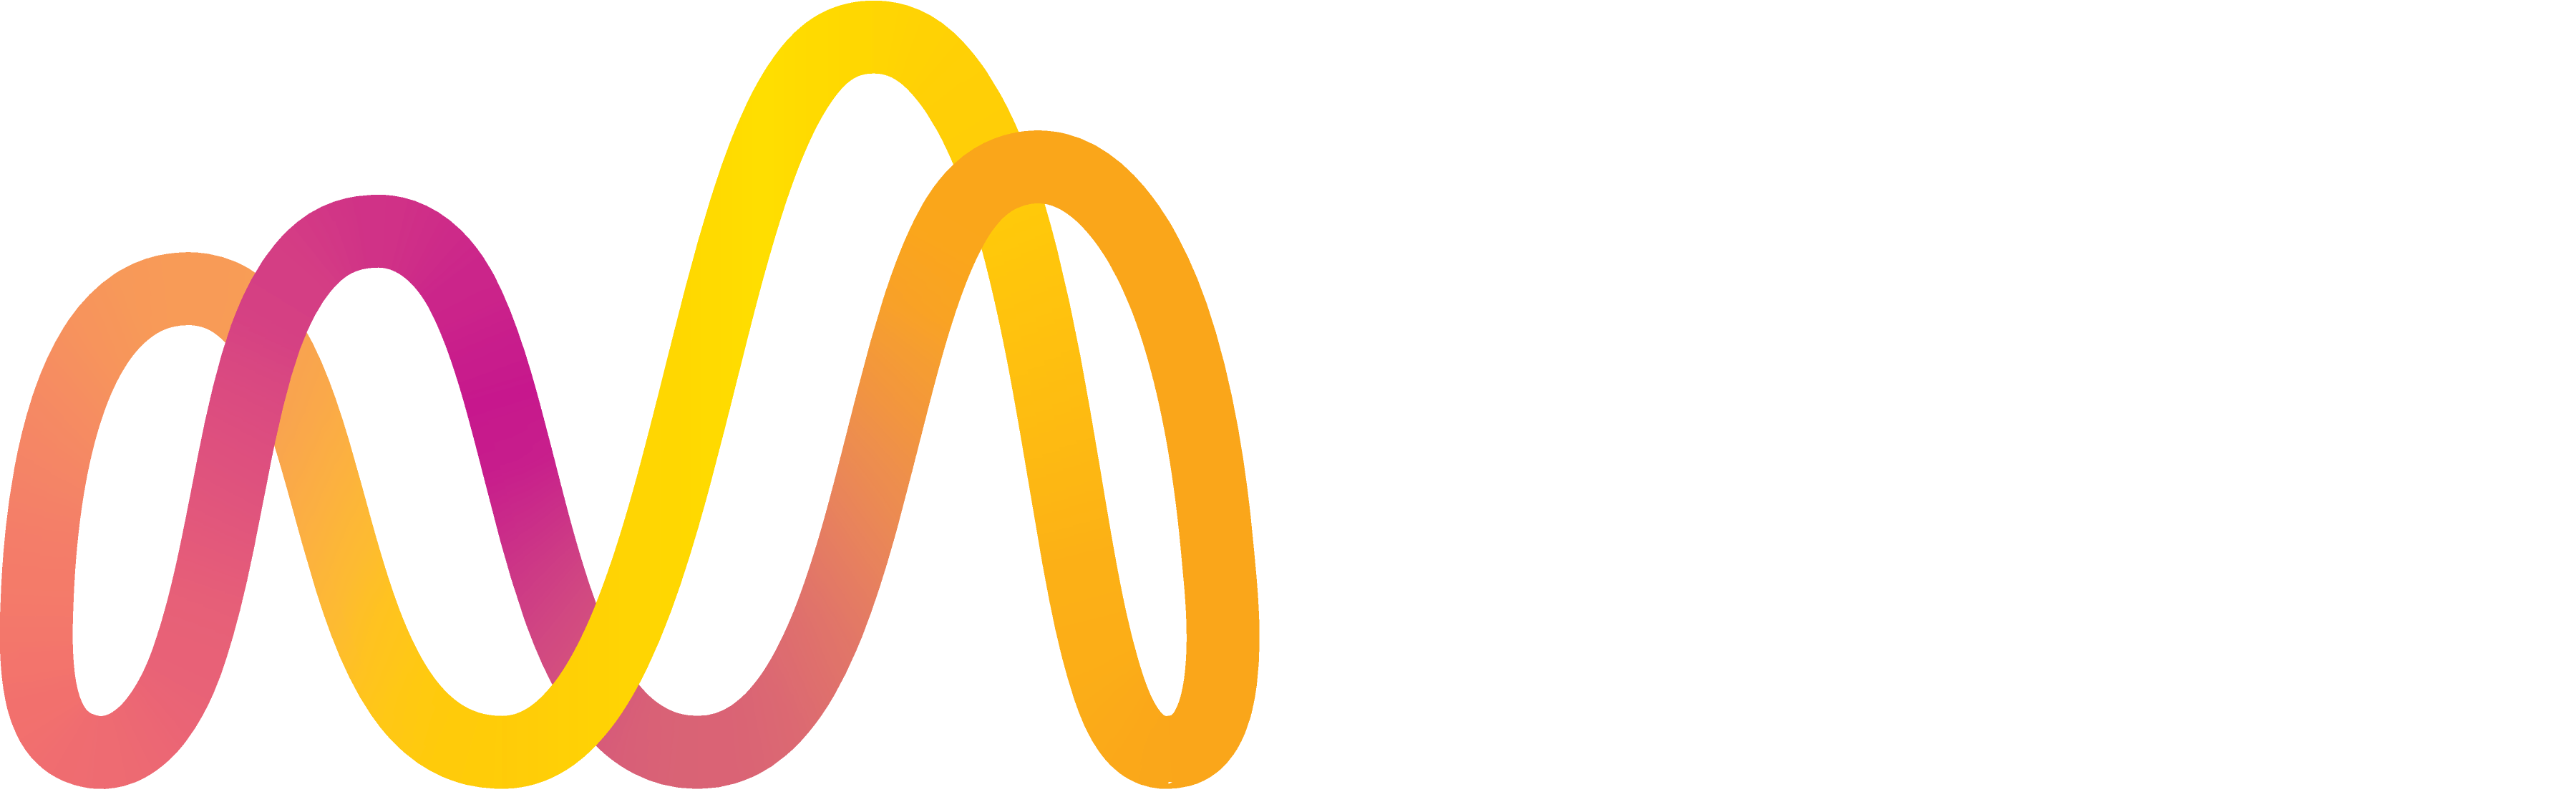 Energy & Utilities Logo